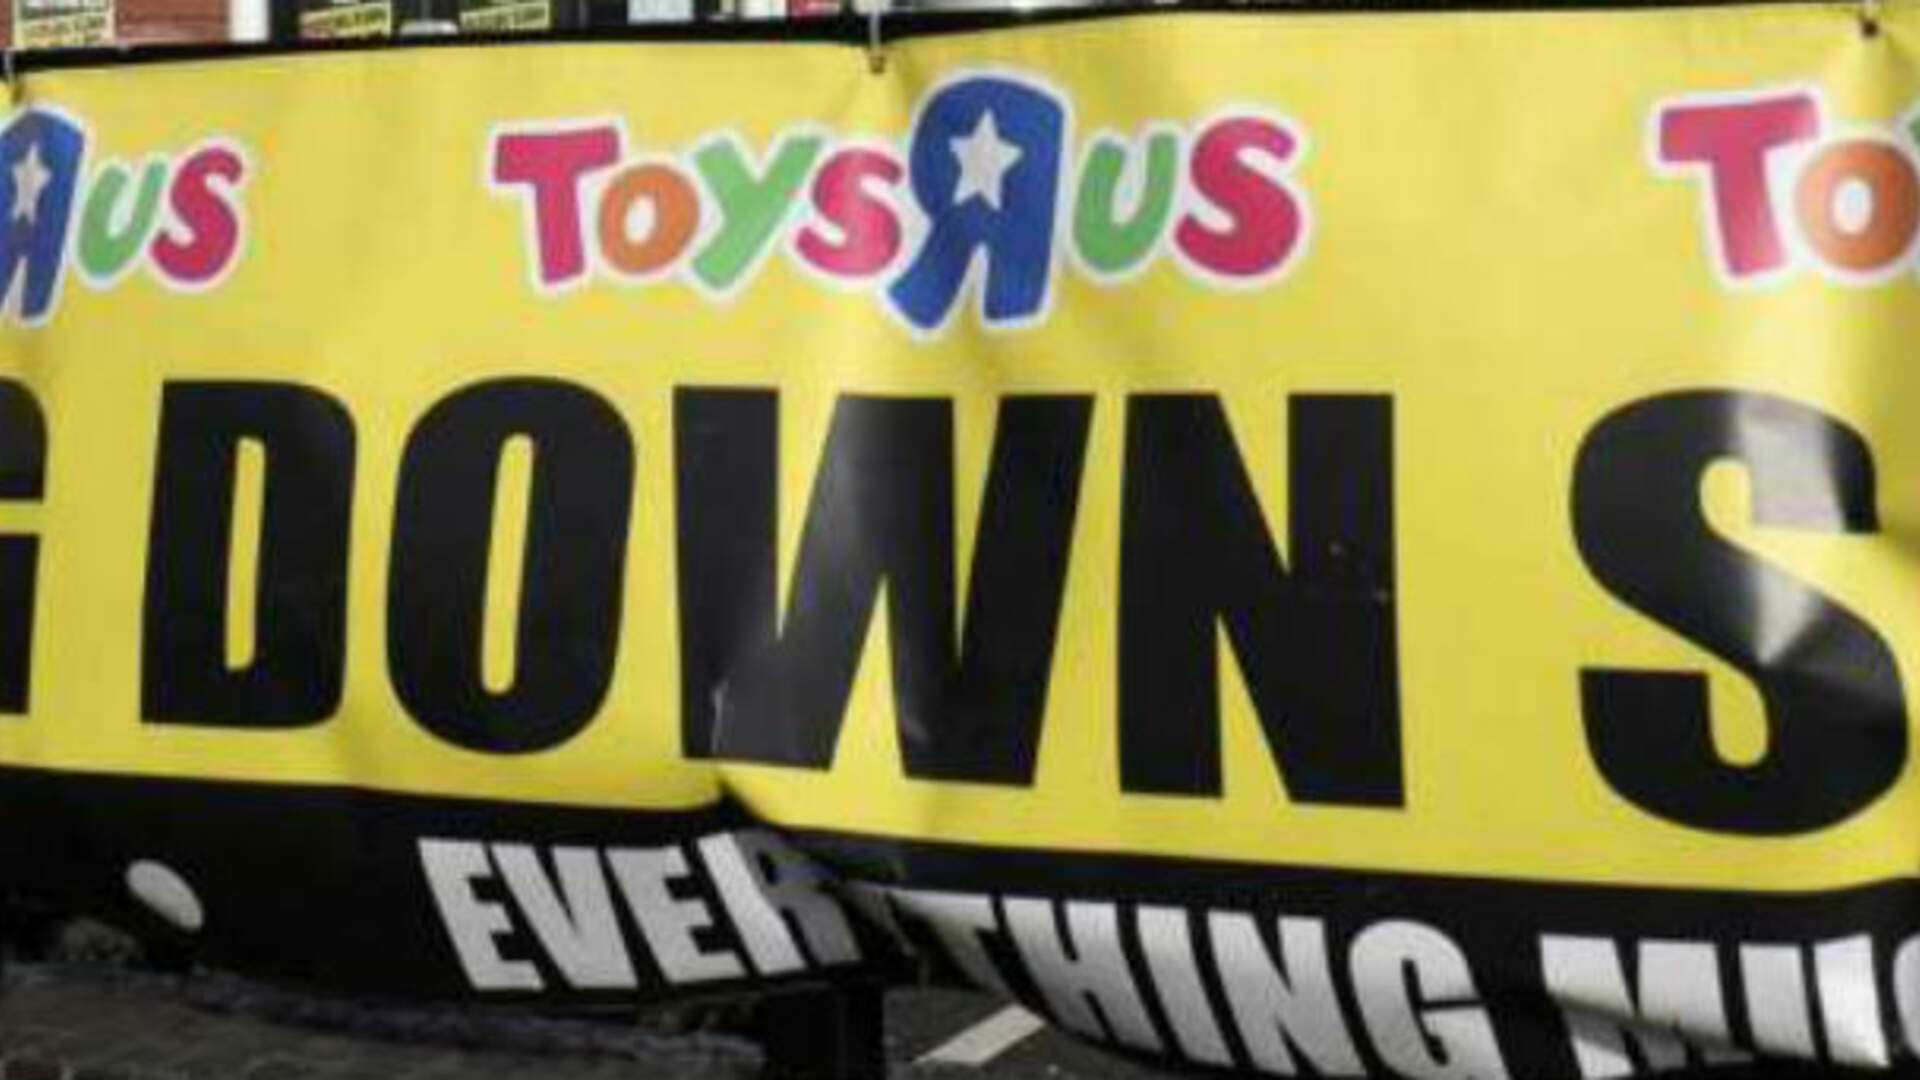 RIP Toys R Us: The Giant Corporation That Weirdly Controlled My Childhood